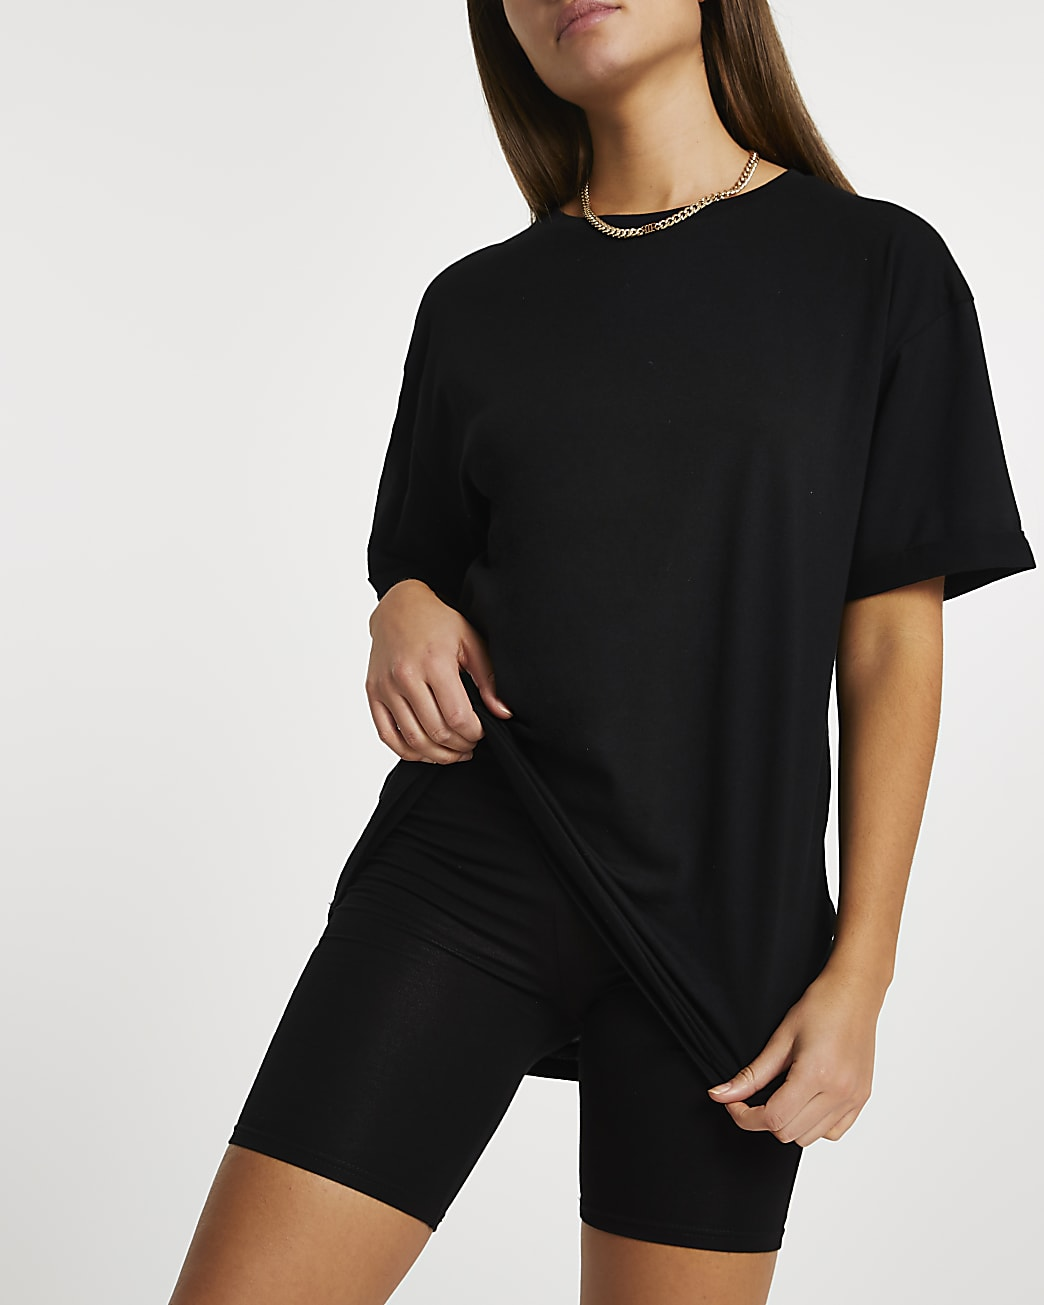 Black oversized t-shirt and cycling shorts